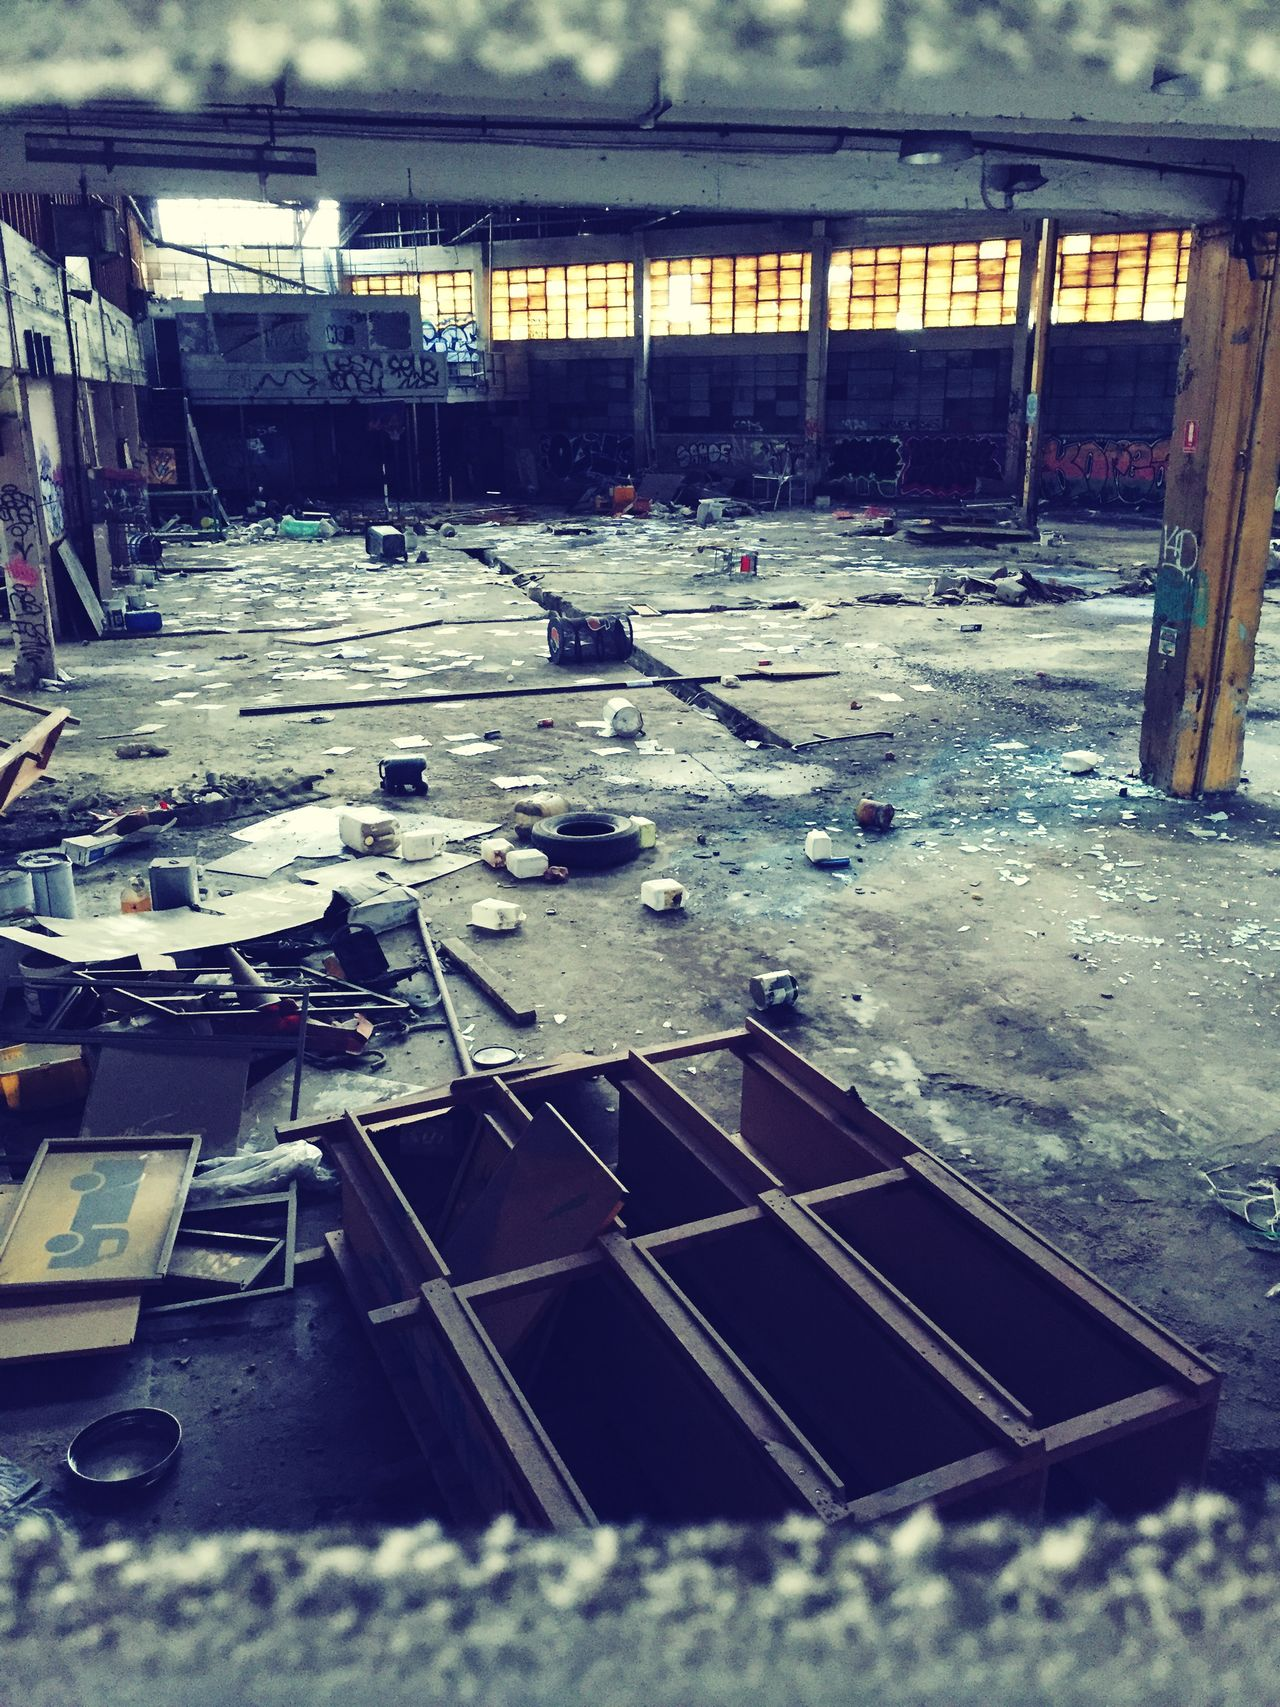 Industry Factory Warehouse Indoors  Abandoned No People Metal Industry Day